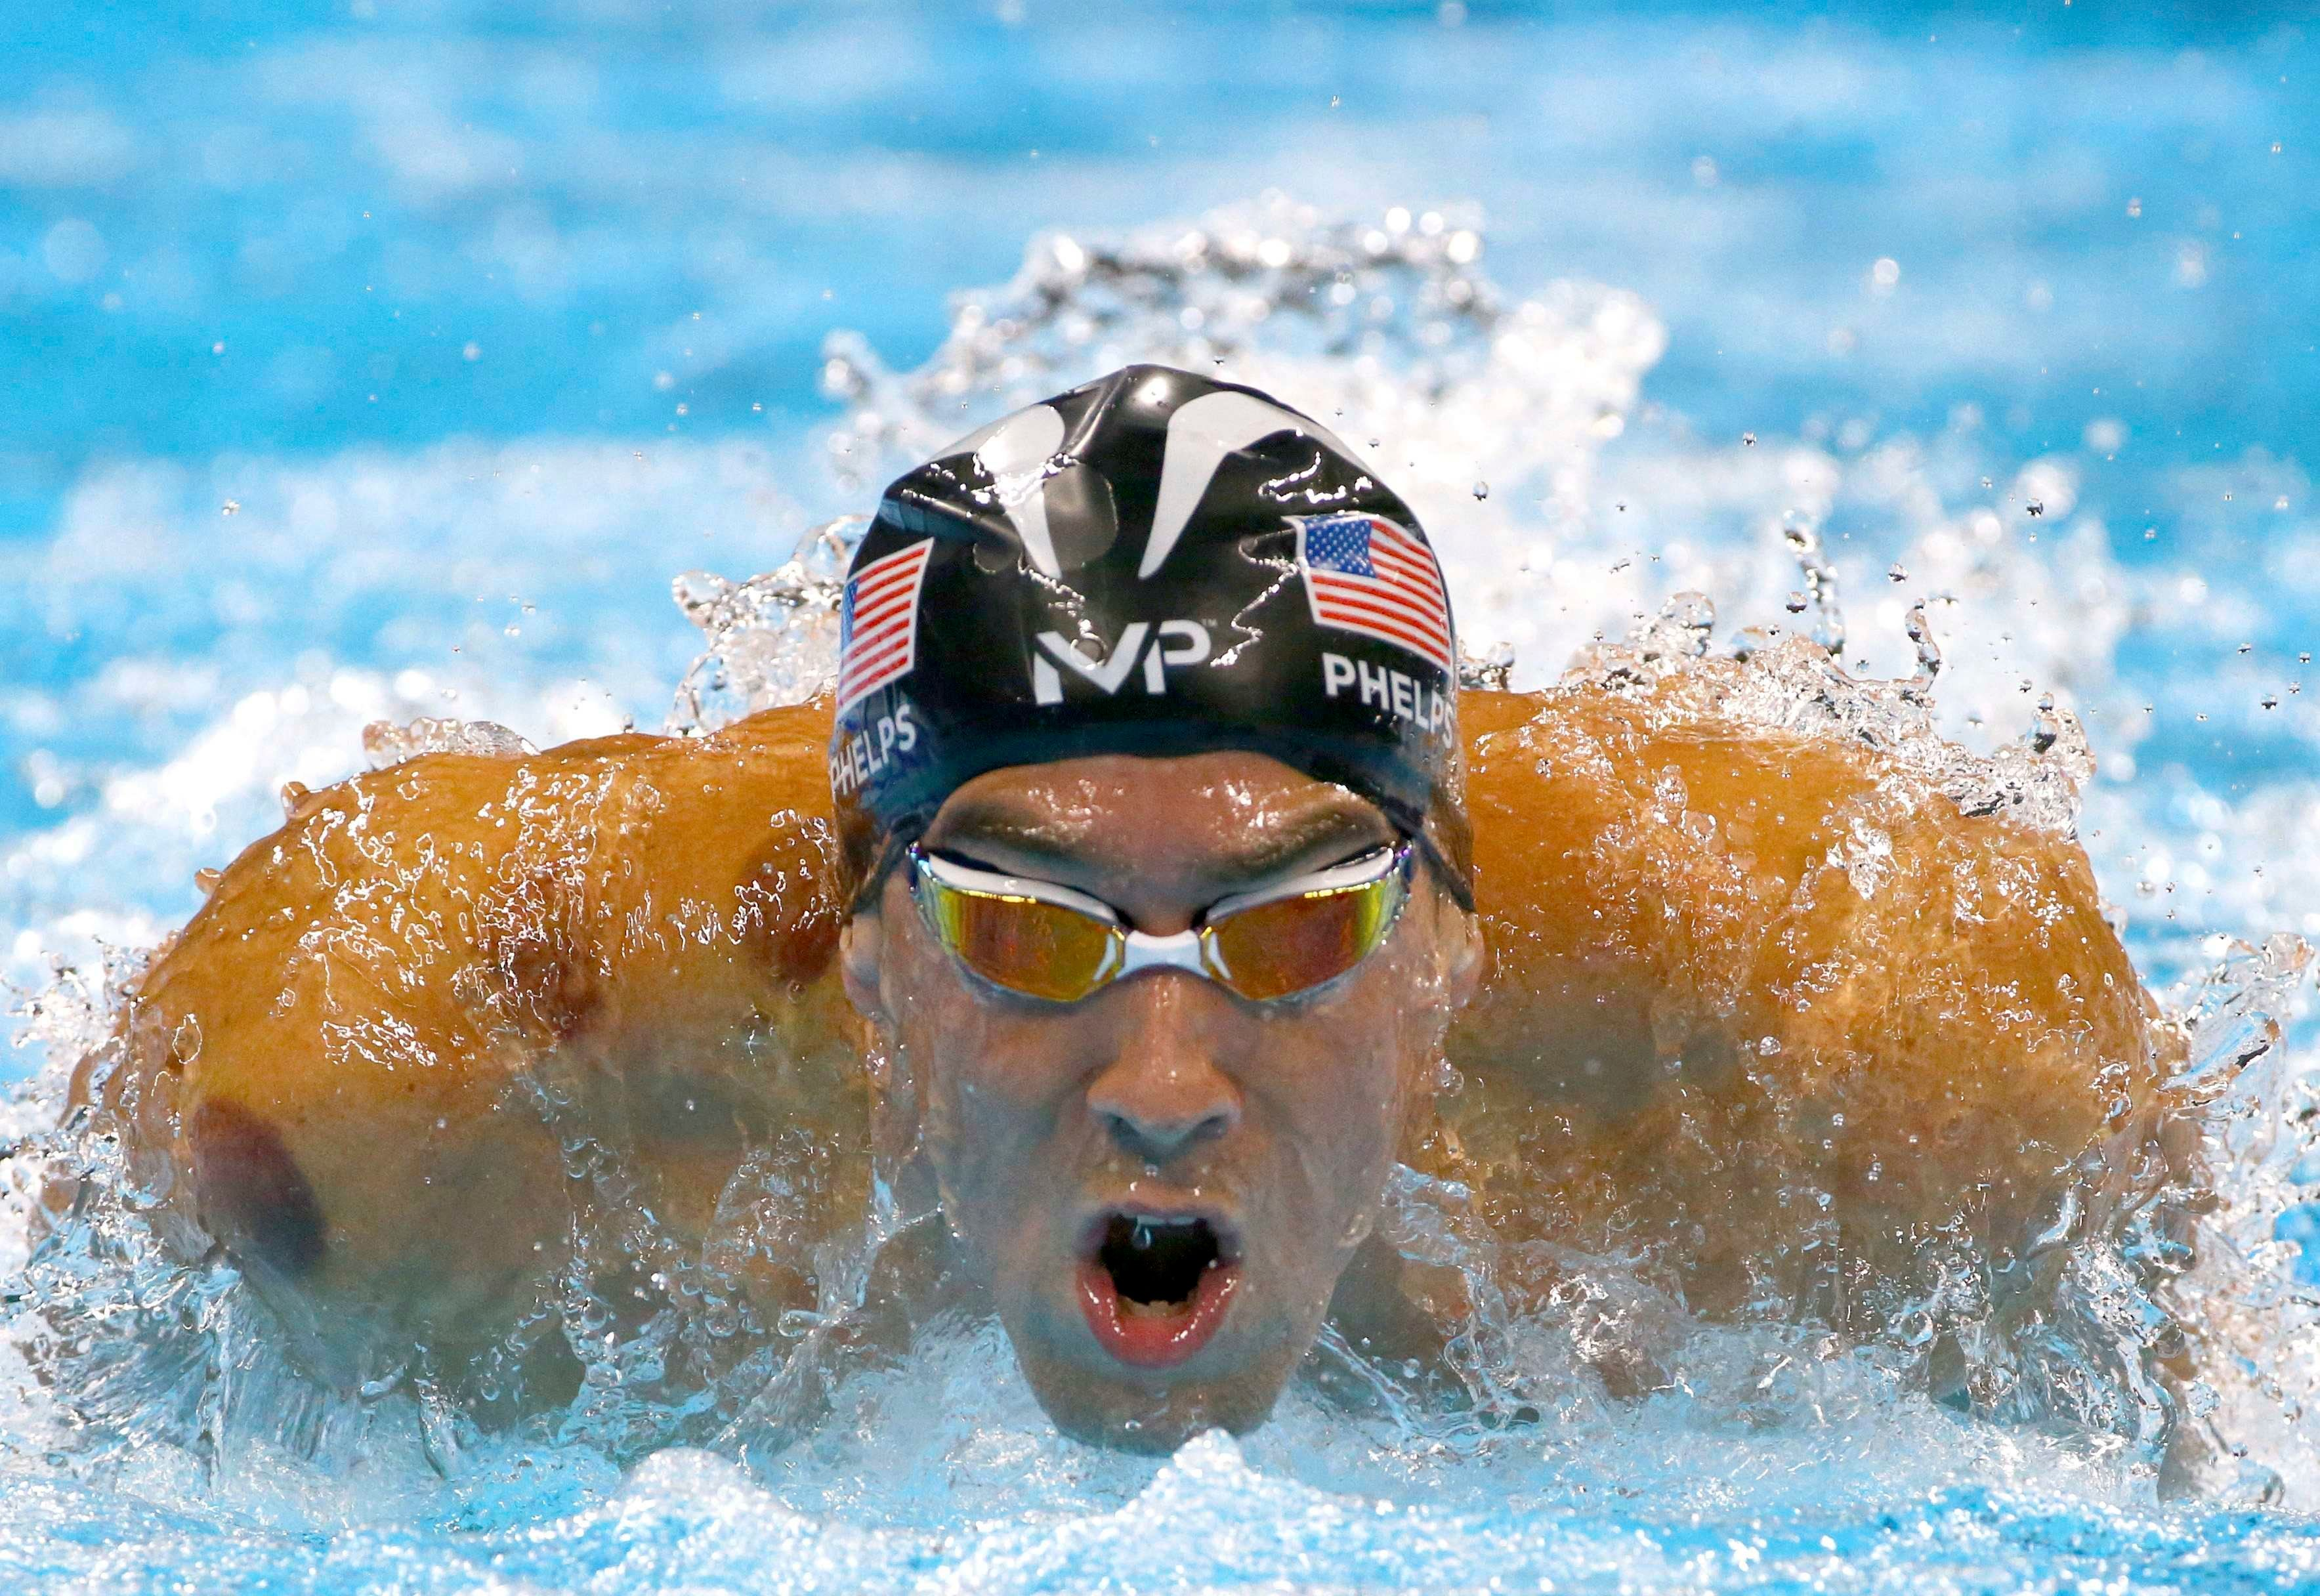 2016 Rio Olympics - Swimming  - Men's 200m Butterfly Semifinals - Olympic Aquatics Stadium - Rio de Janeiro, Brazil - 08/08/2016. Michael Phelps (USA) of USA  competes   REUTERS/David Gray   FOR EDITORIAL USE ONLY. NOT FOR SALE FOR MARKETING OR ADVERTISING CAMPAIGNS.